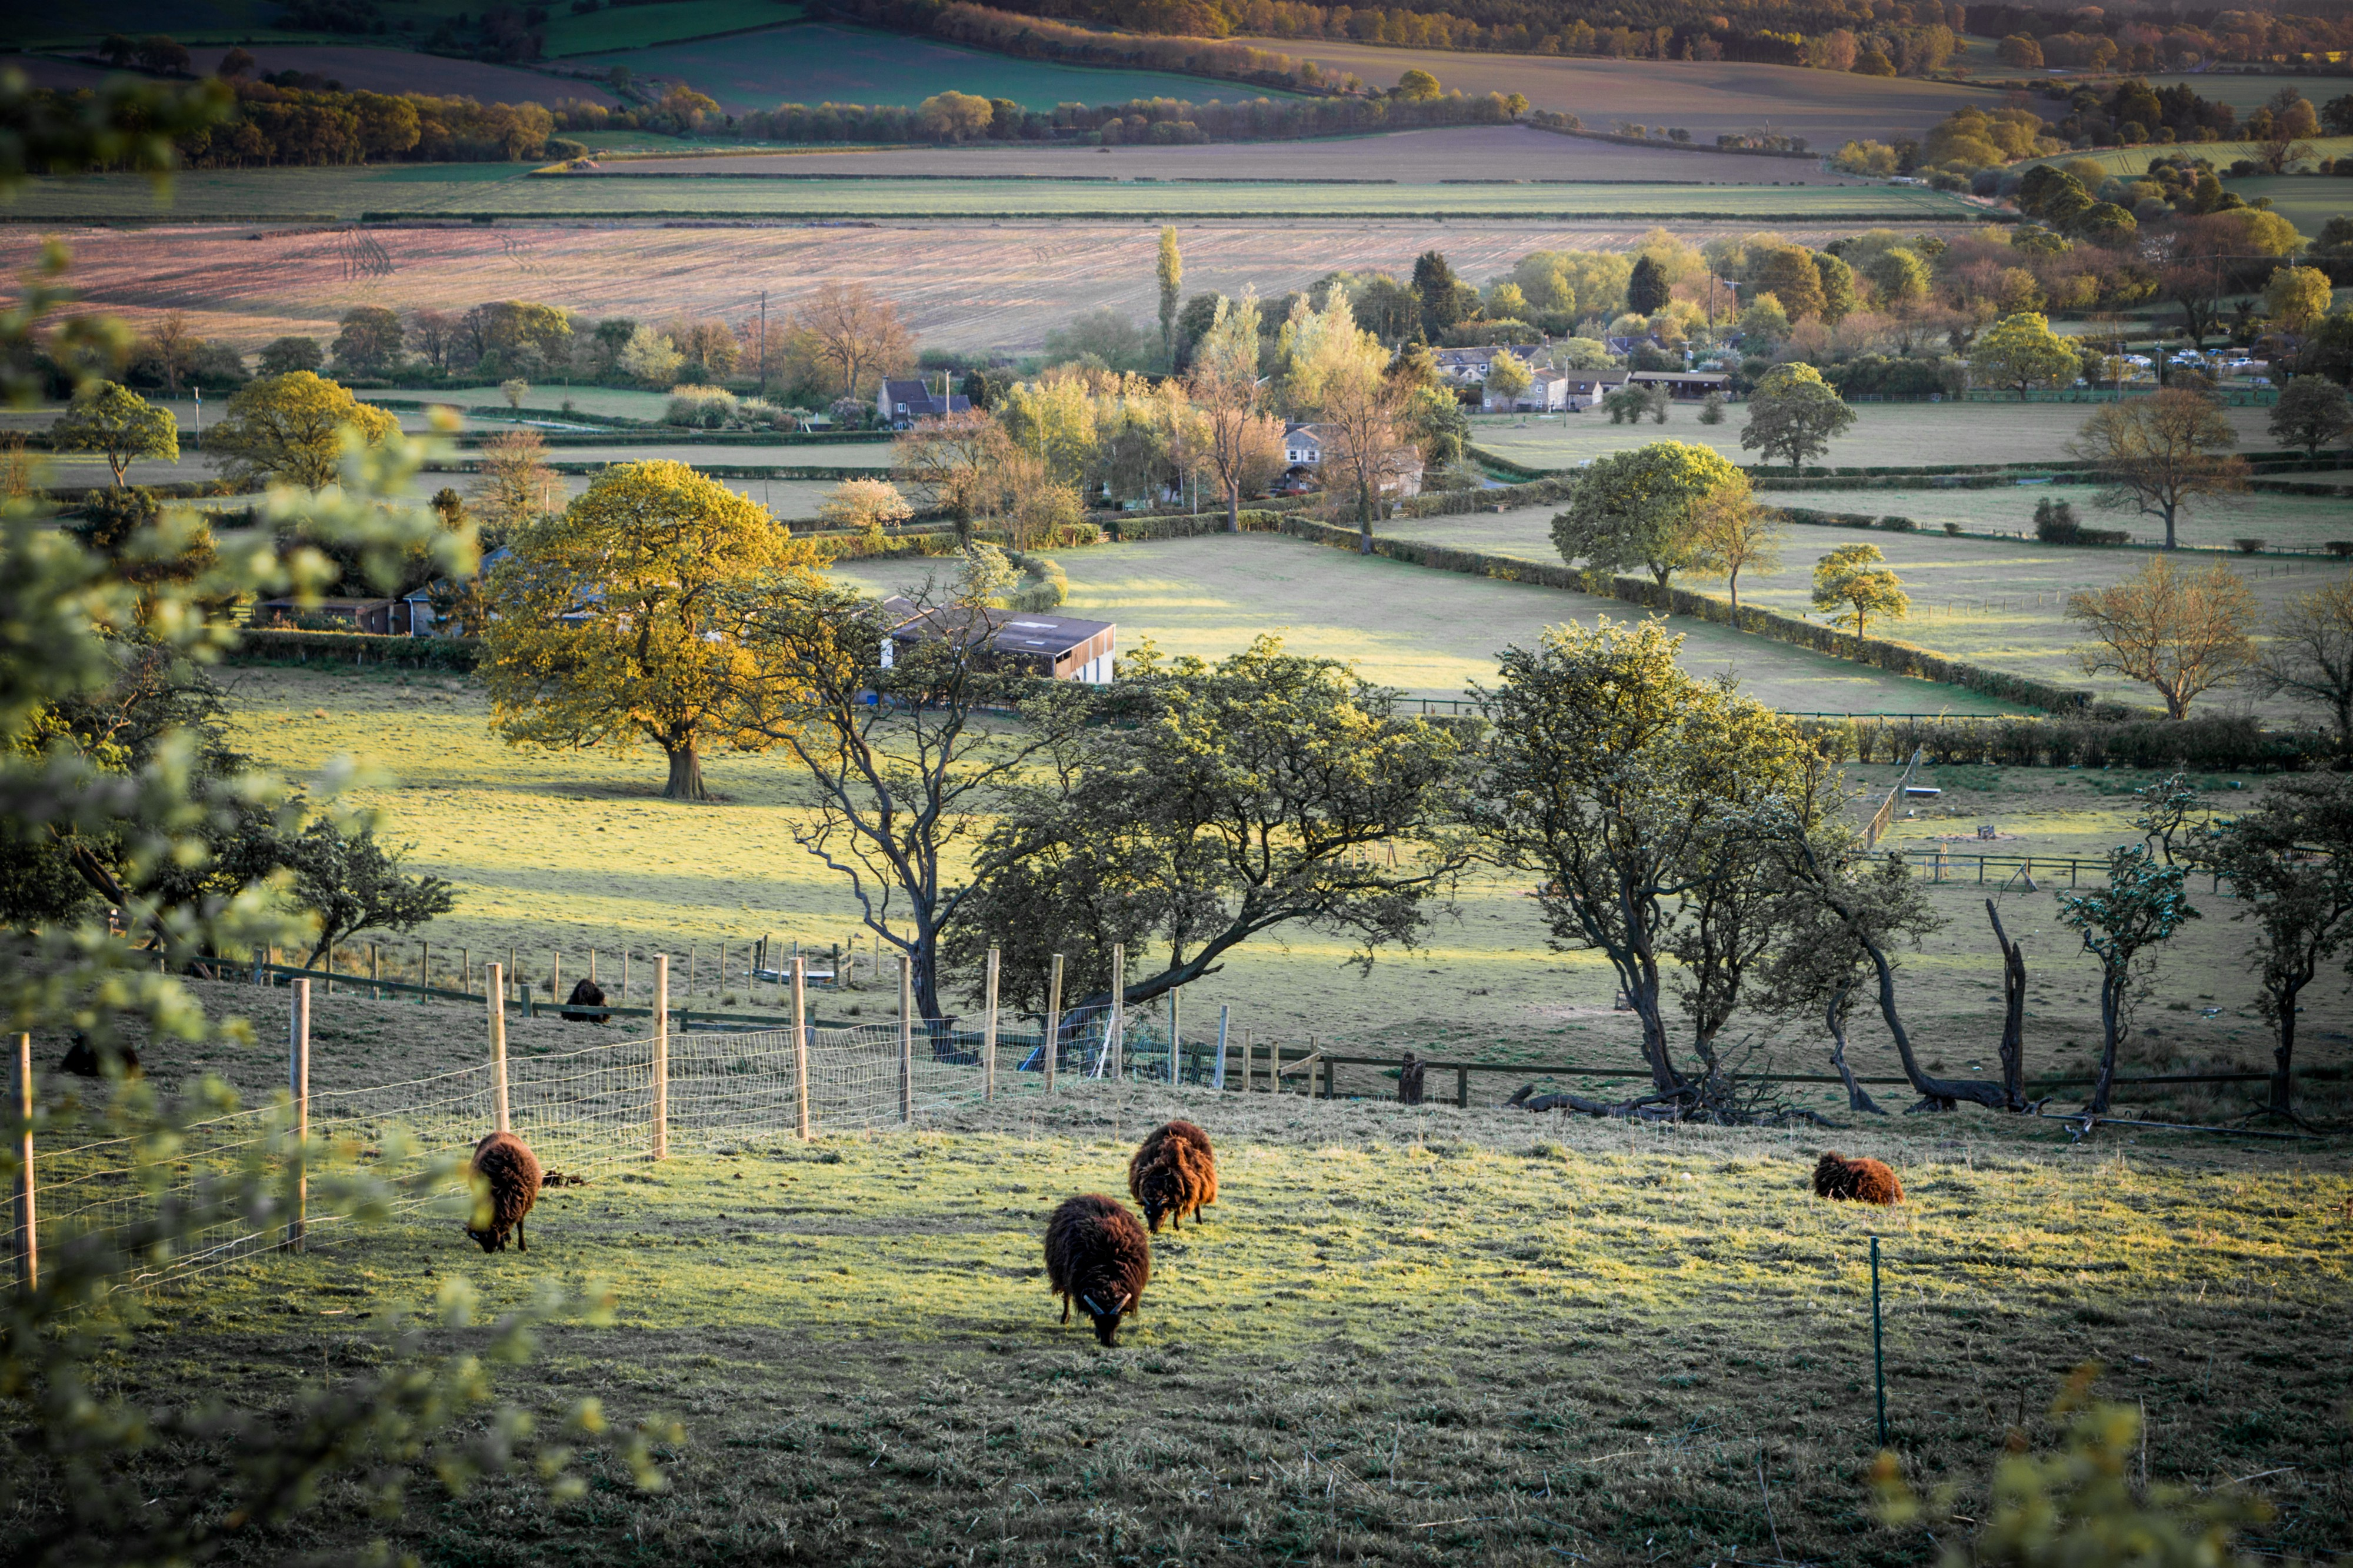 bucolic picture of pastures with cows